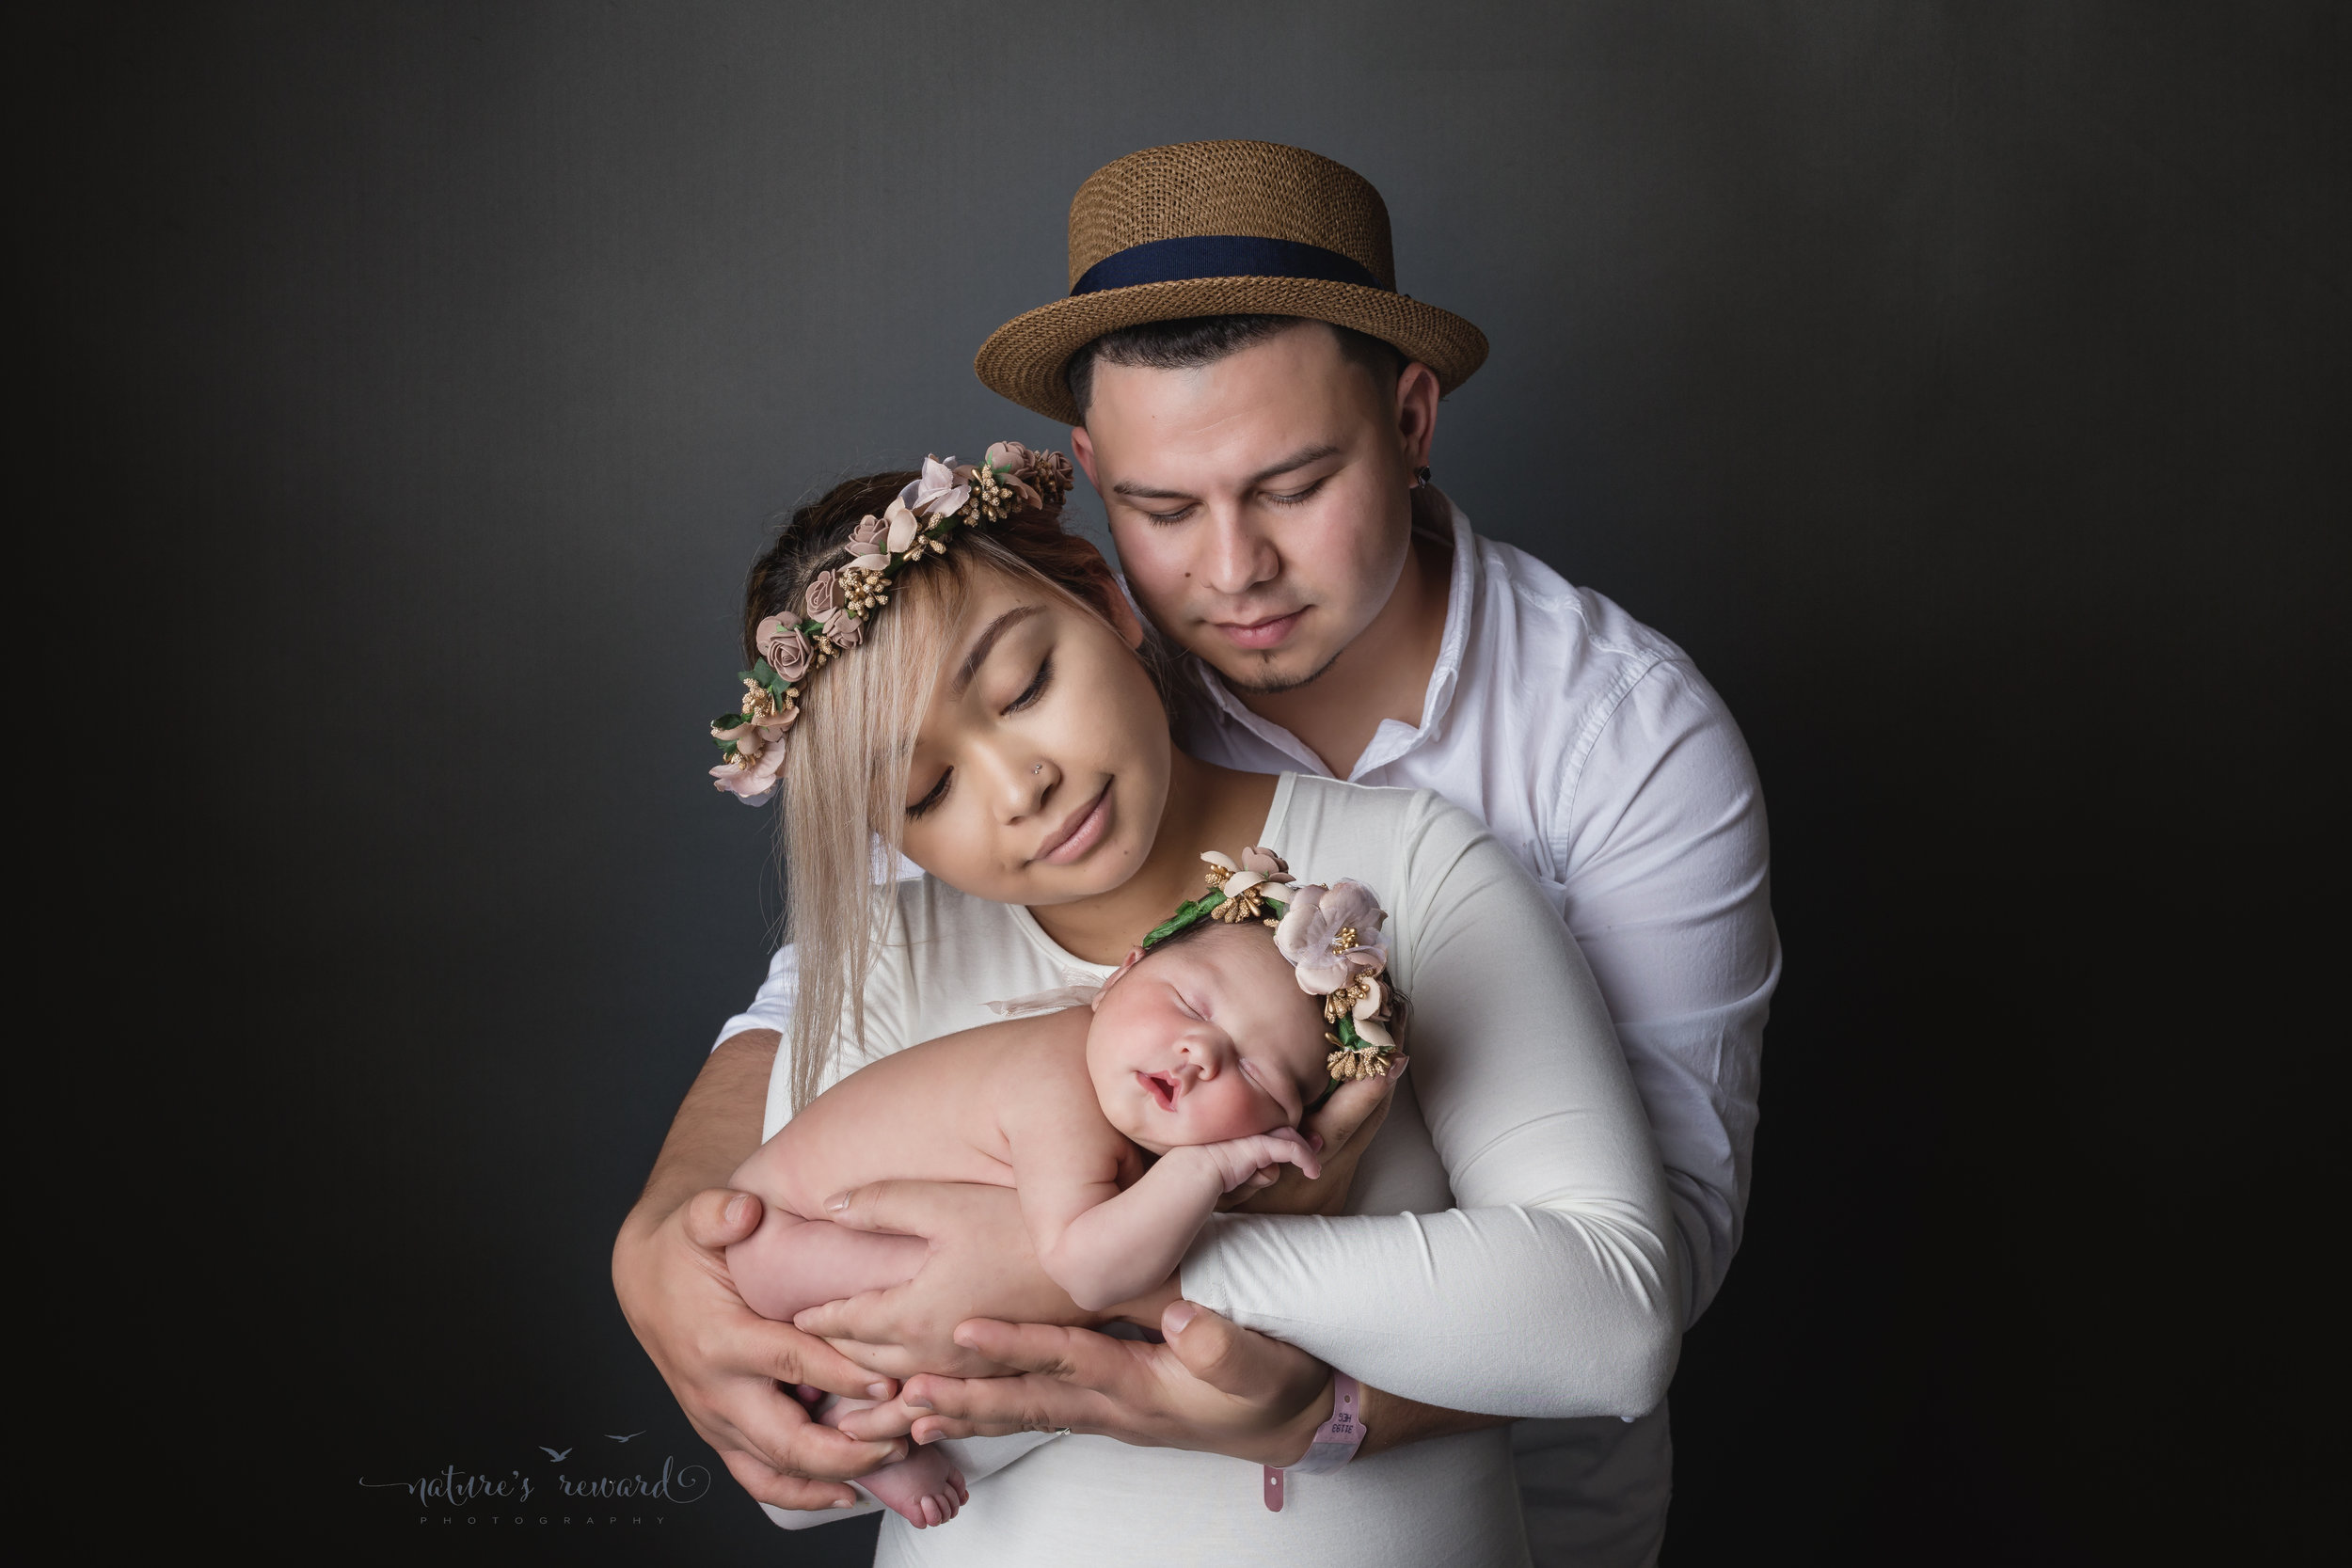 Their family is complete in the warm, white and grey portrait of a family with their newborn baby girl in a flower crown family portrait by Southern California Newborn and Family Photographer Nature's Reward Photography